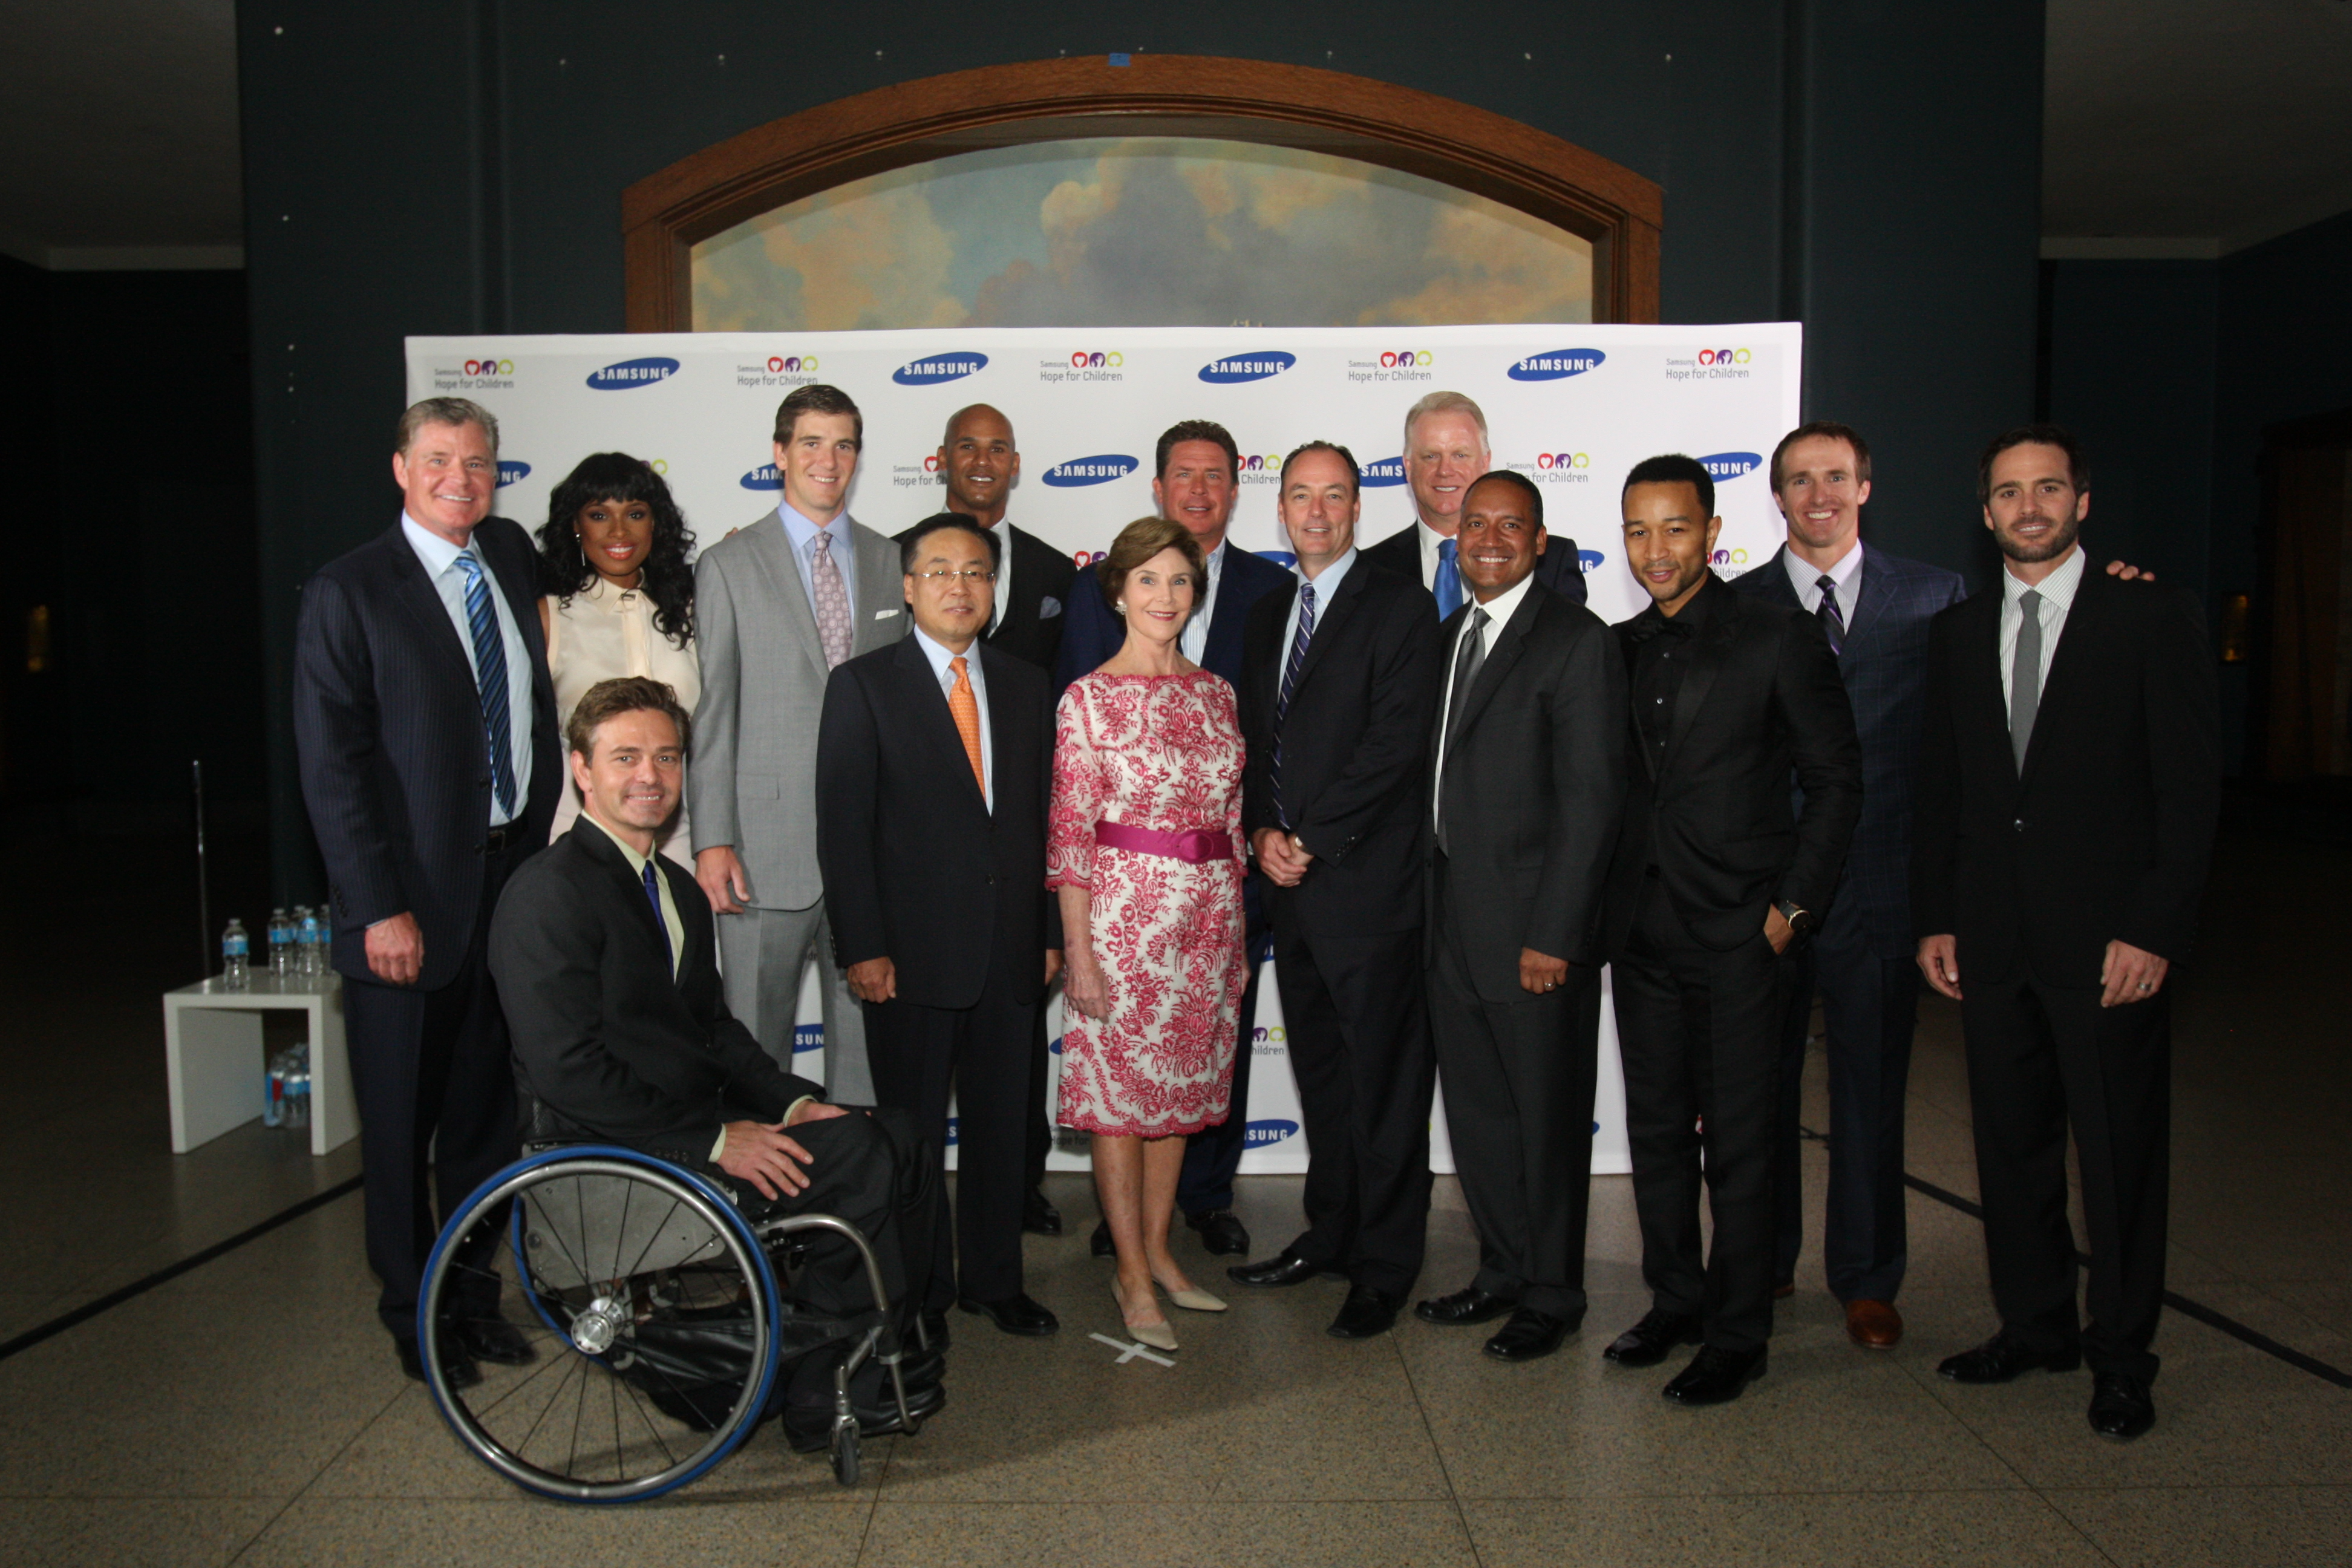 Dan Patrick, Jennifer Hudson, Eli Manning, Jason Taylor, Dan Marino, Boomer Esiason, Drew Brees, Chris Waddell, Samsung President and CEO YK Kim, Laura Bush, Samsung Electronics America's President of Consumer Business Division Tim Baxter, Samsung Electronics America's CMO Ralph Santana, John Legend and Jimmie Johnson at the 2012 Samsung Hope for Children Gala at the American Museum of Natural History in (NYC, 2012)